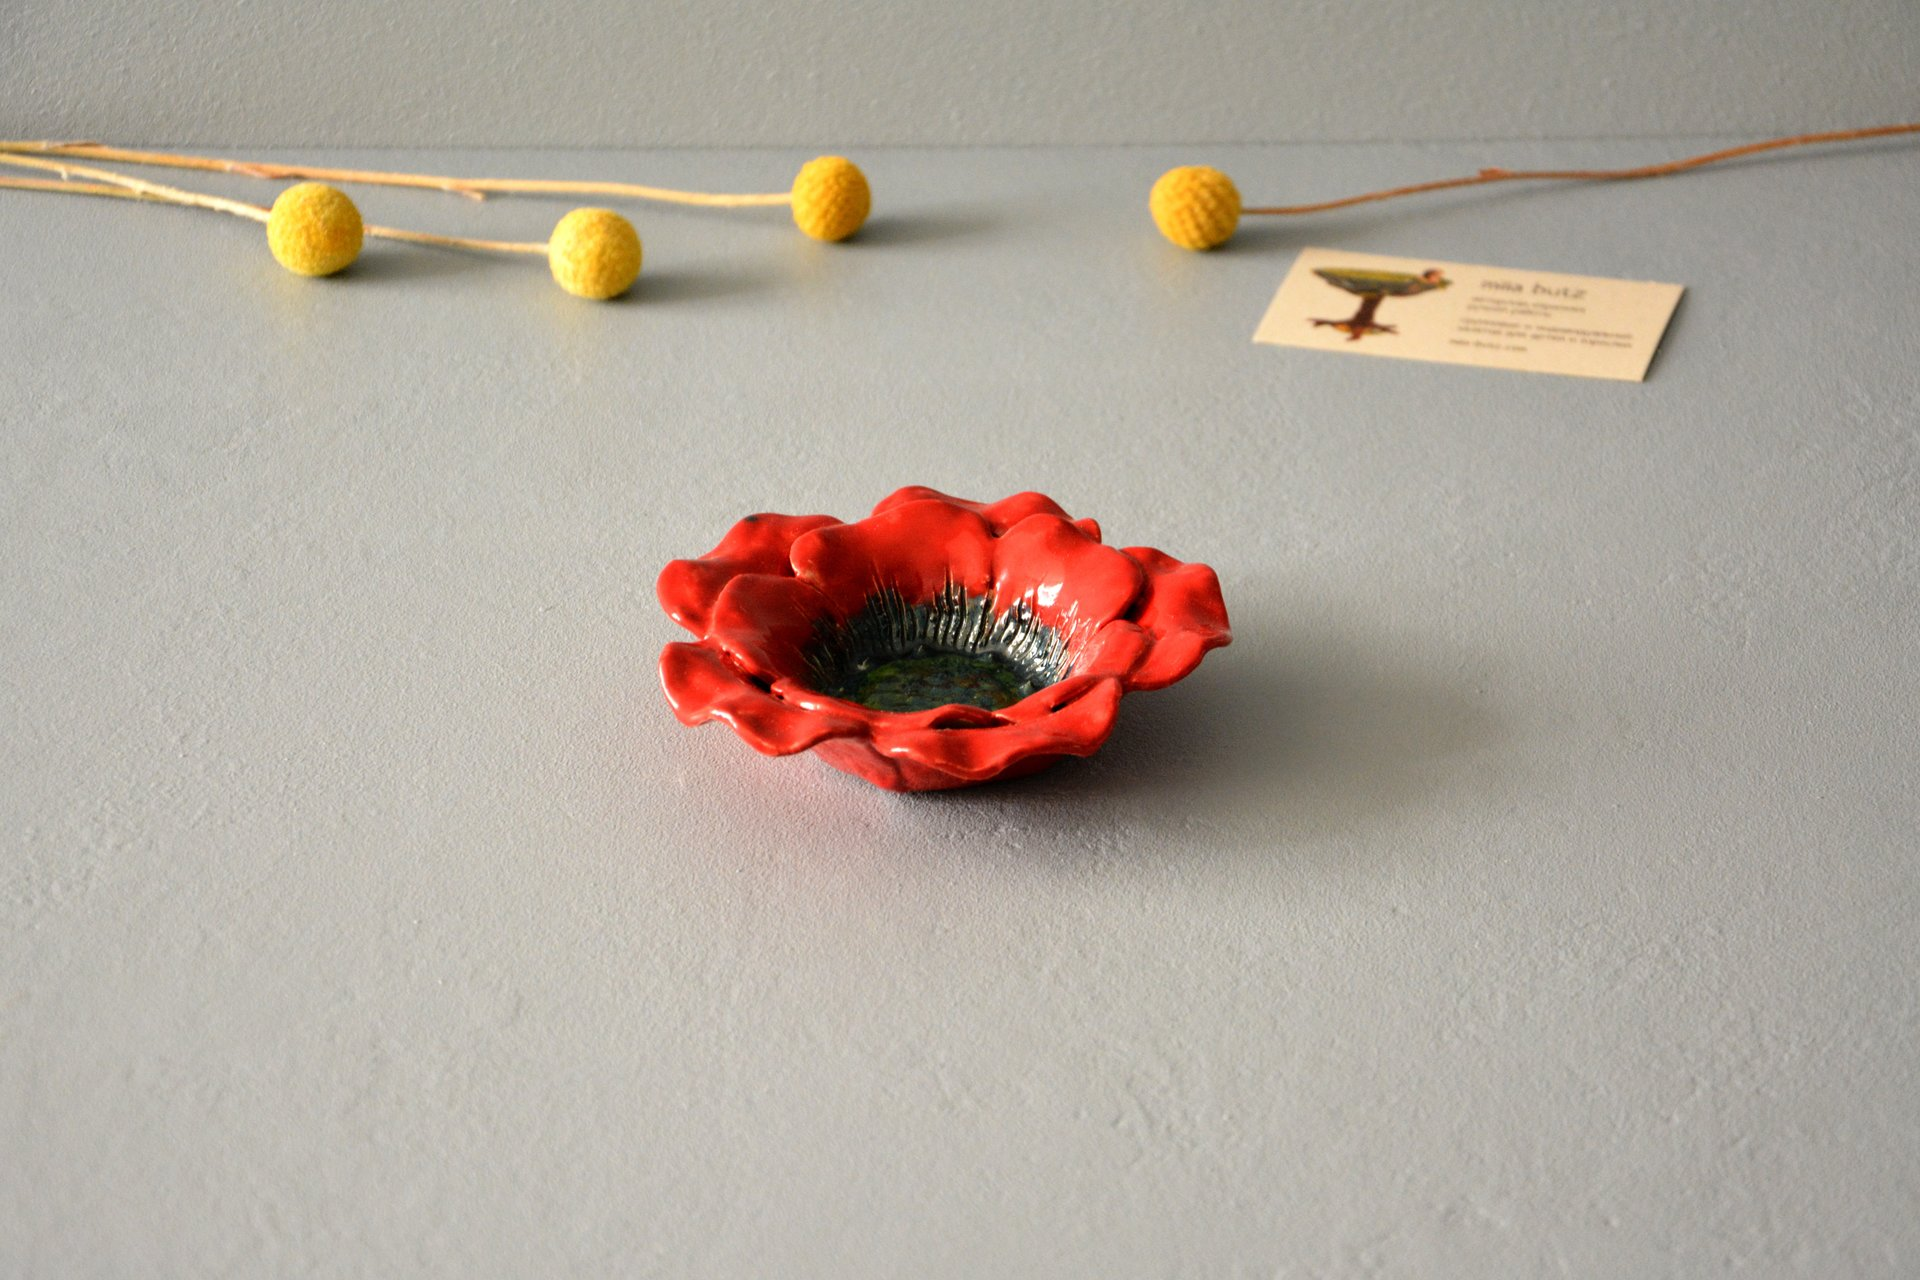 Red candlestick in the shape of a poppy flower, for ordinary candles and candles for tablets, diameter - 12 cm, photo 1 of 5.